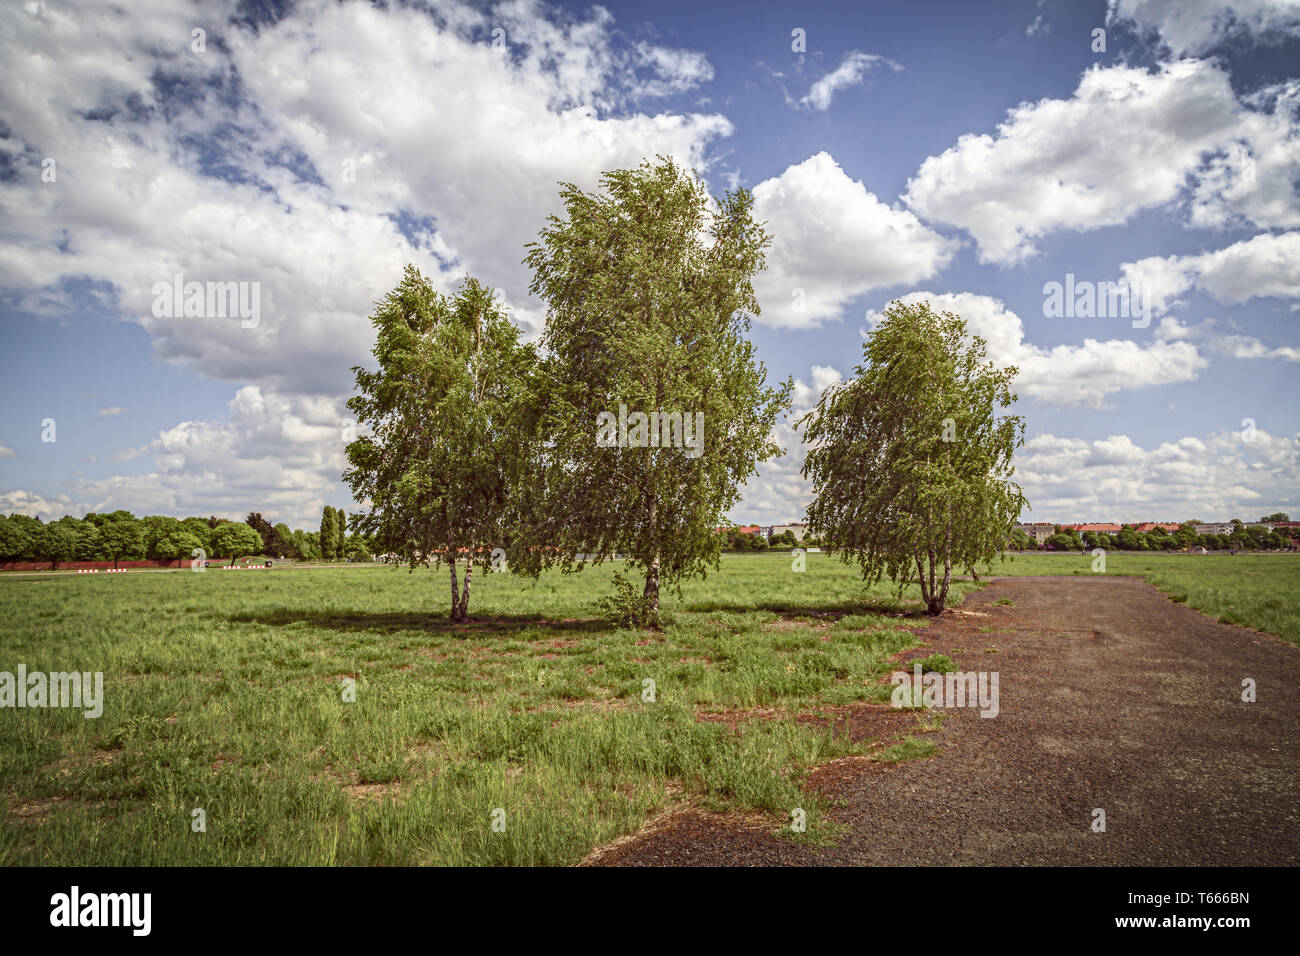 three birch trees at the Tempelhofer Feld, Berlin Germany - Stock Image